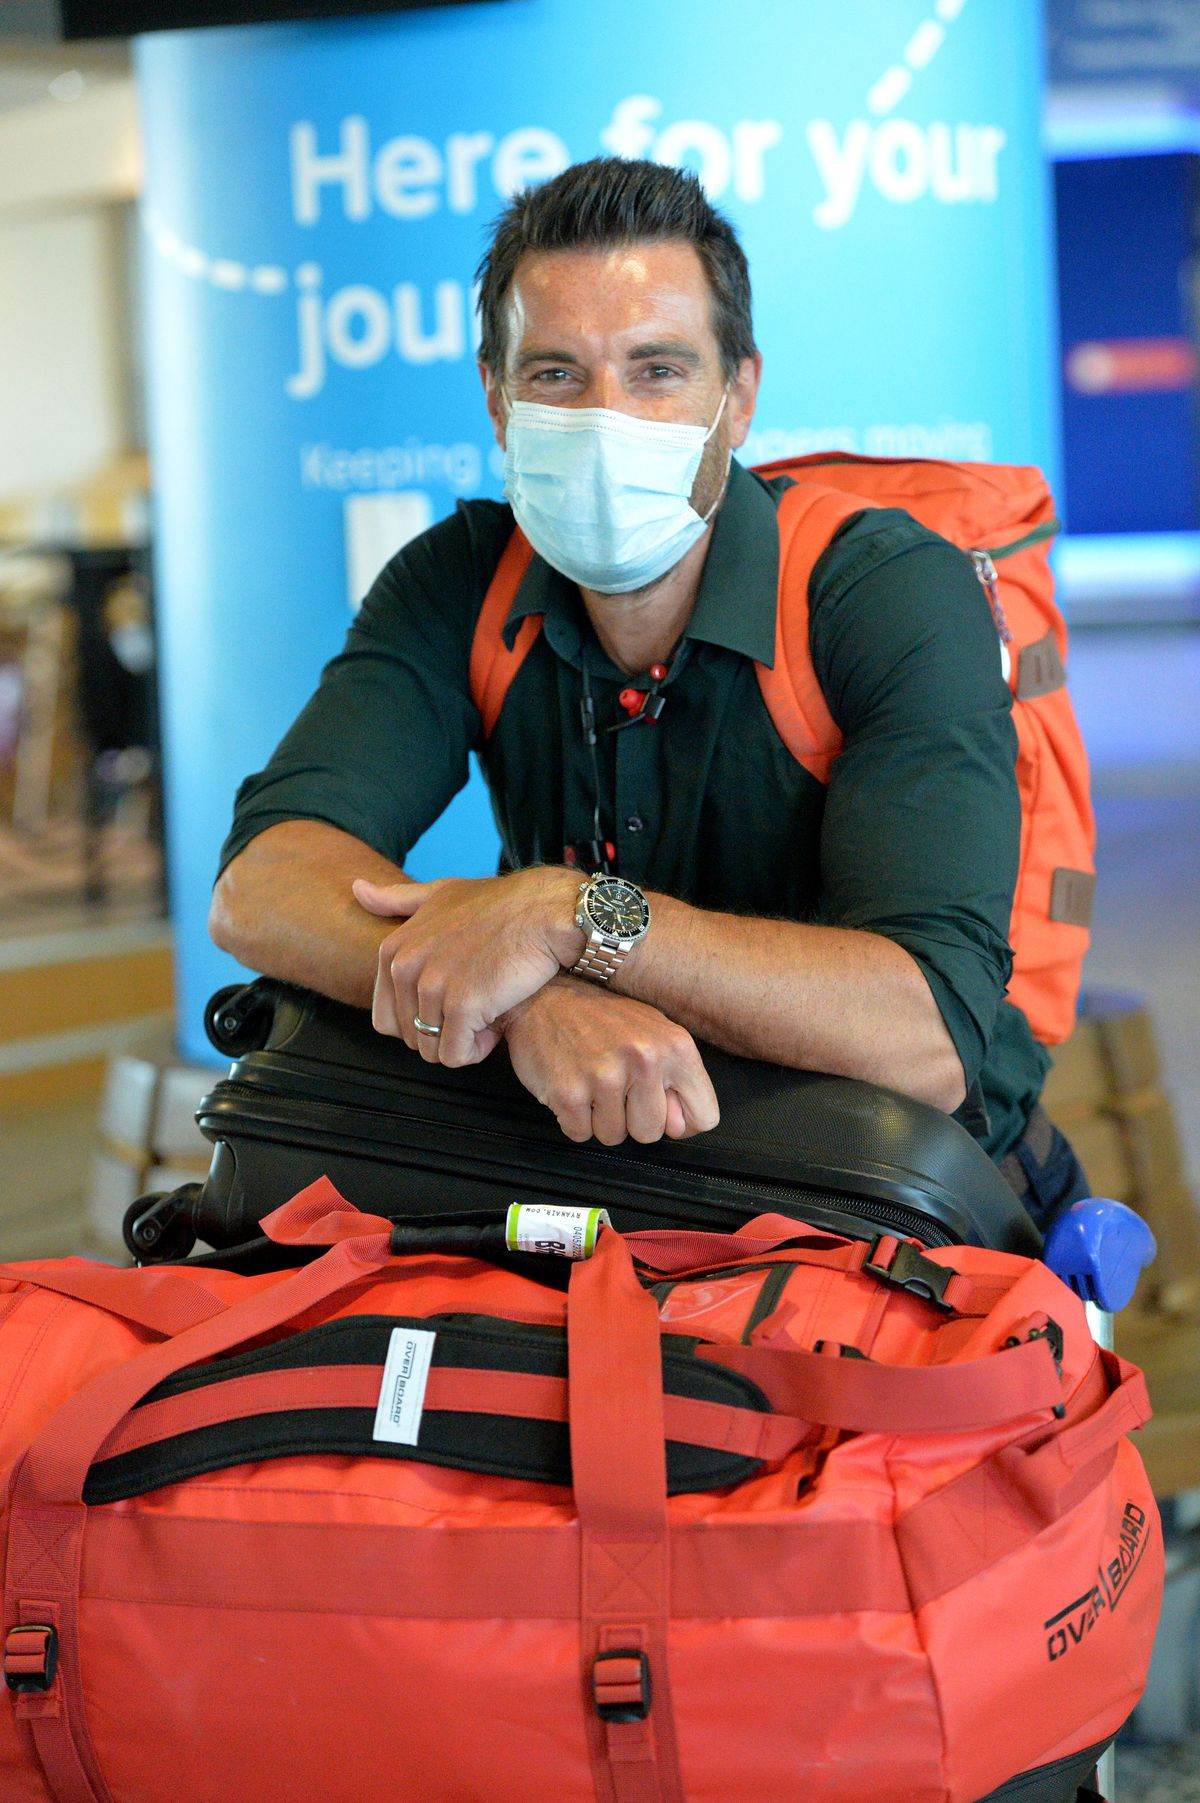 Andrew Grubb arrives at Birmingham Airport from Faro